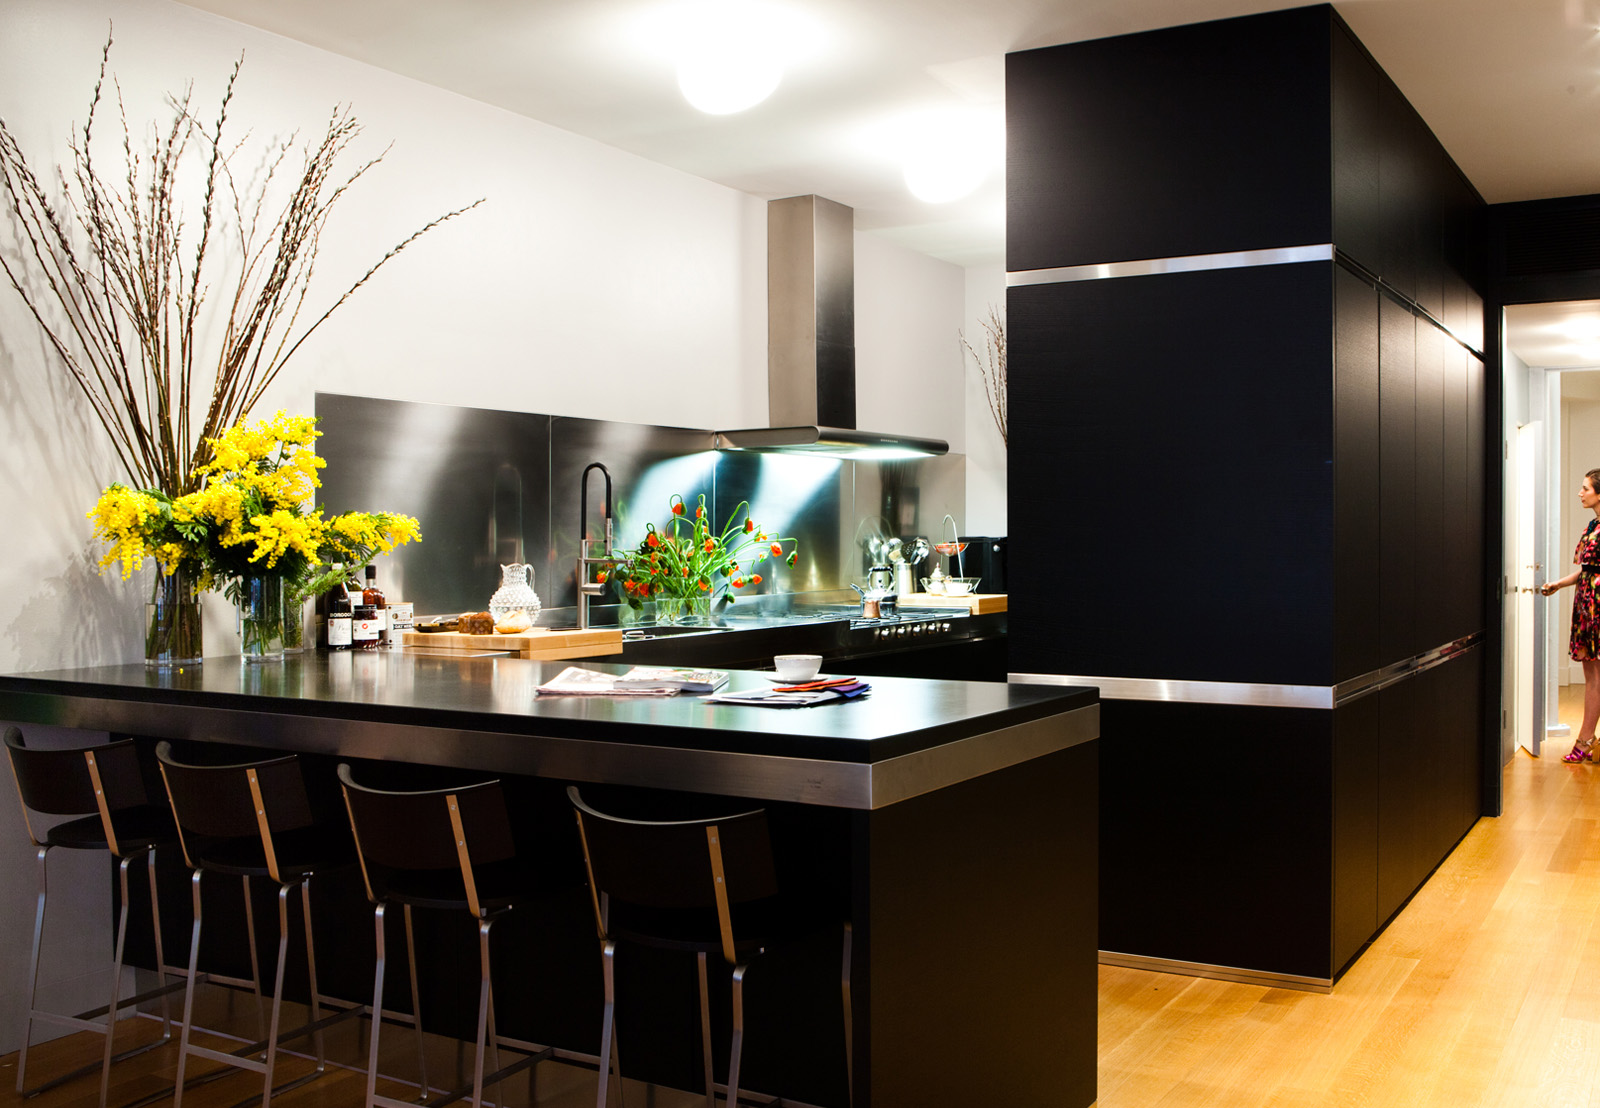 modern kitchen with stainless steel finishes, black cabinetry, and granite countertops